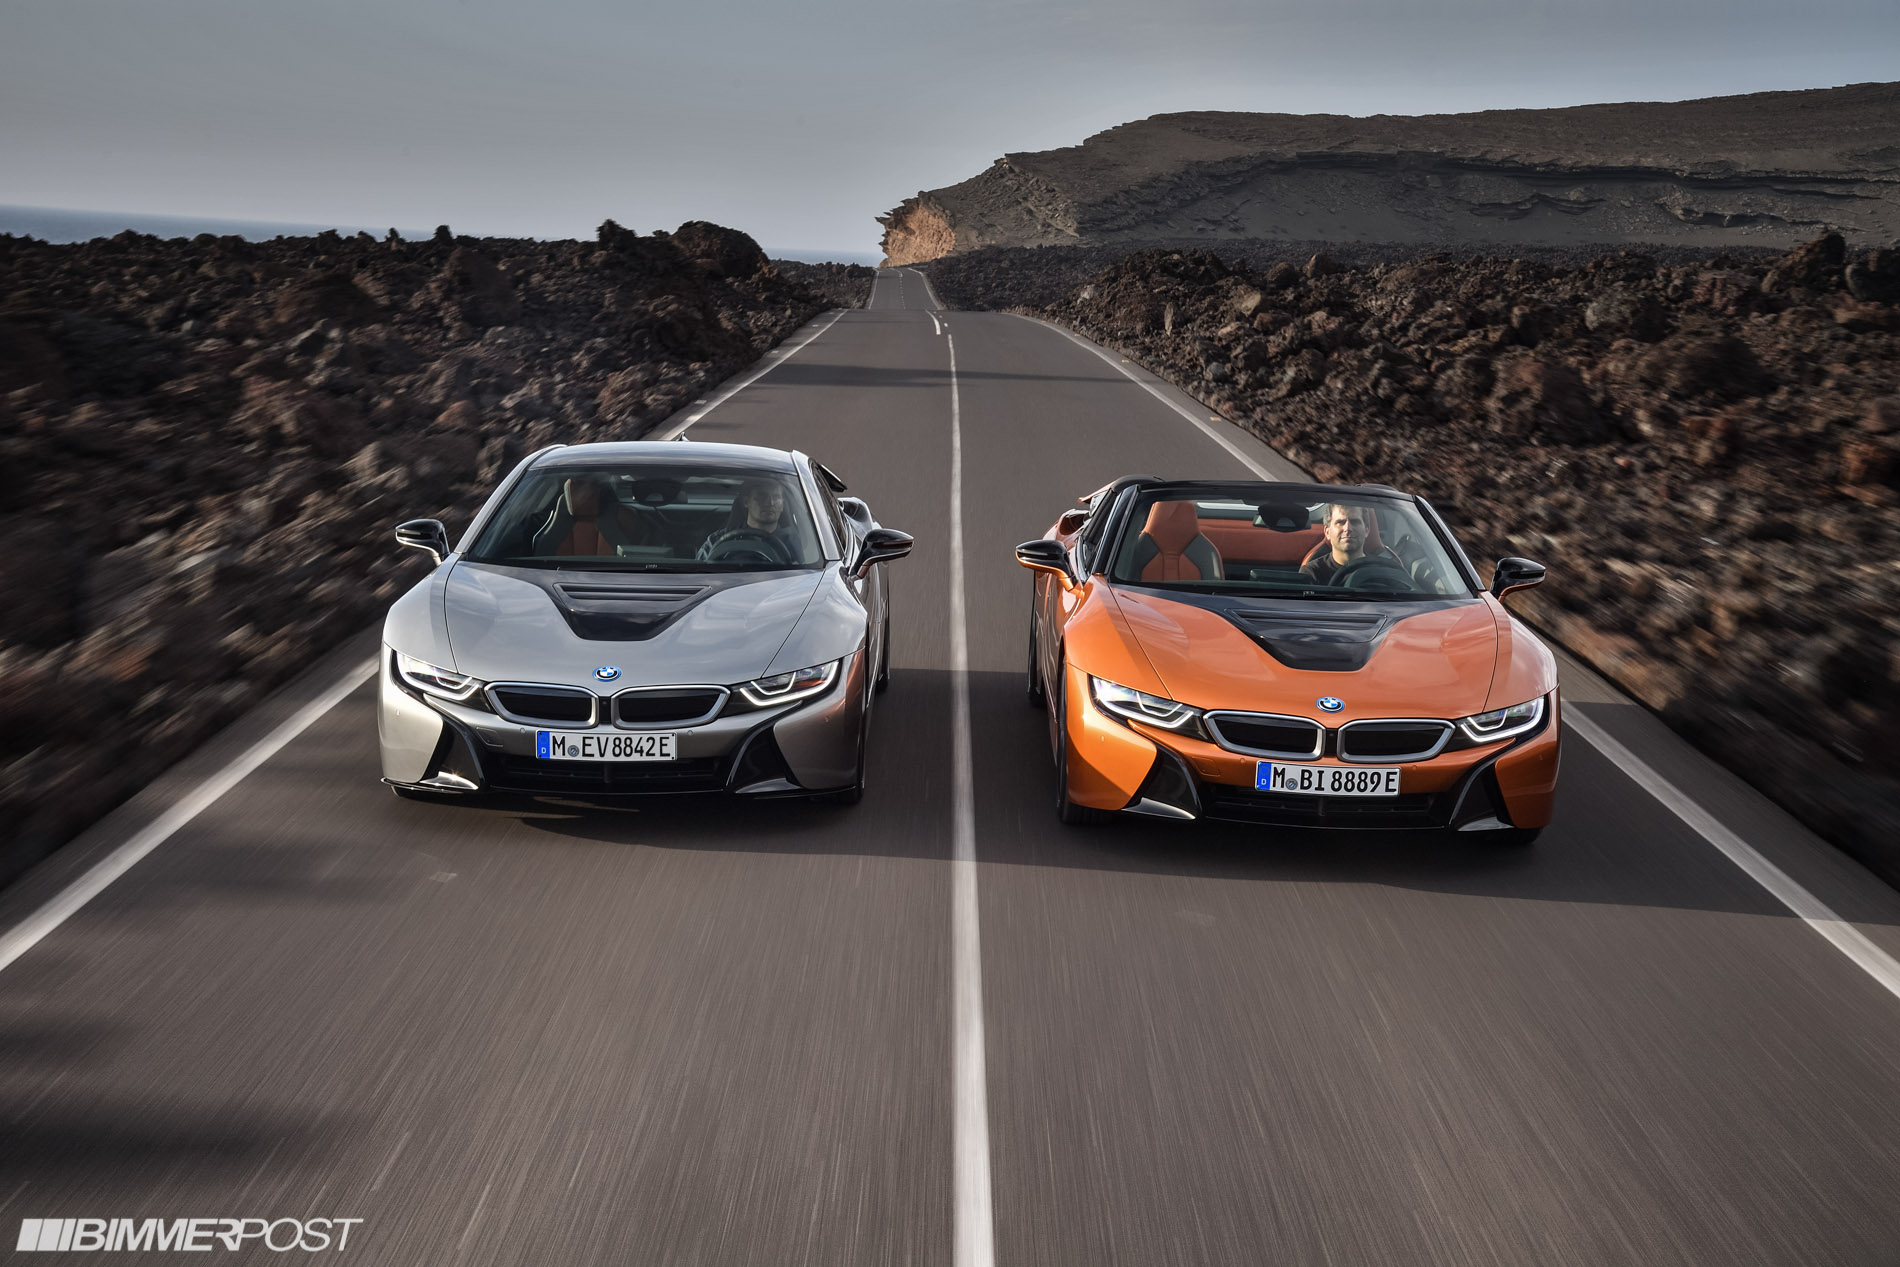 World Debut Of The Bmw I8 Roadster And New 2019 Bmw I8 Coupe